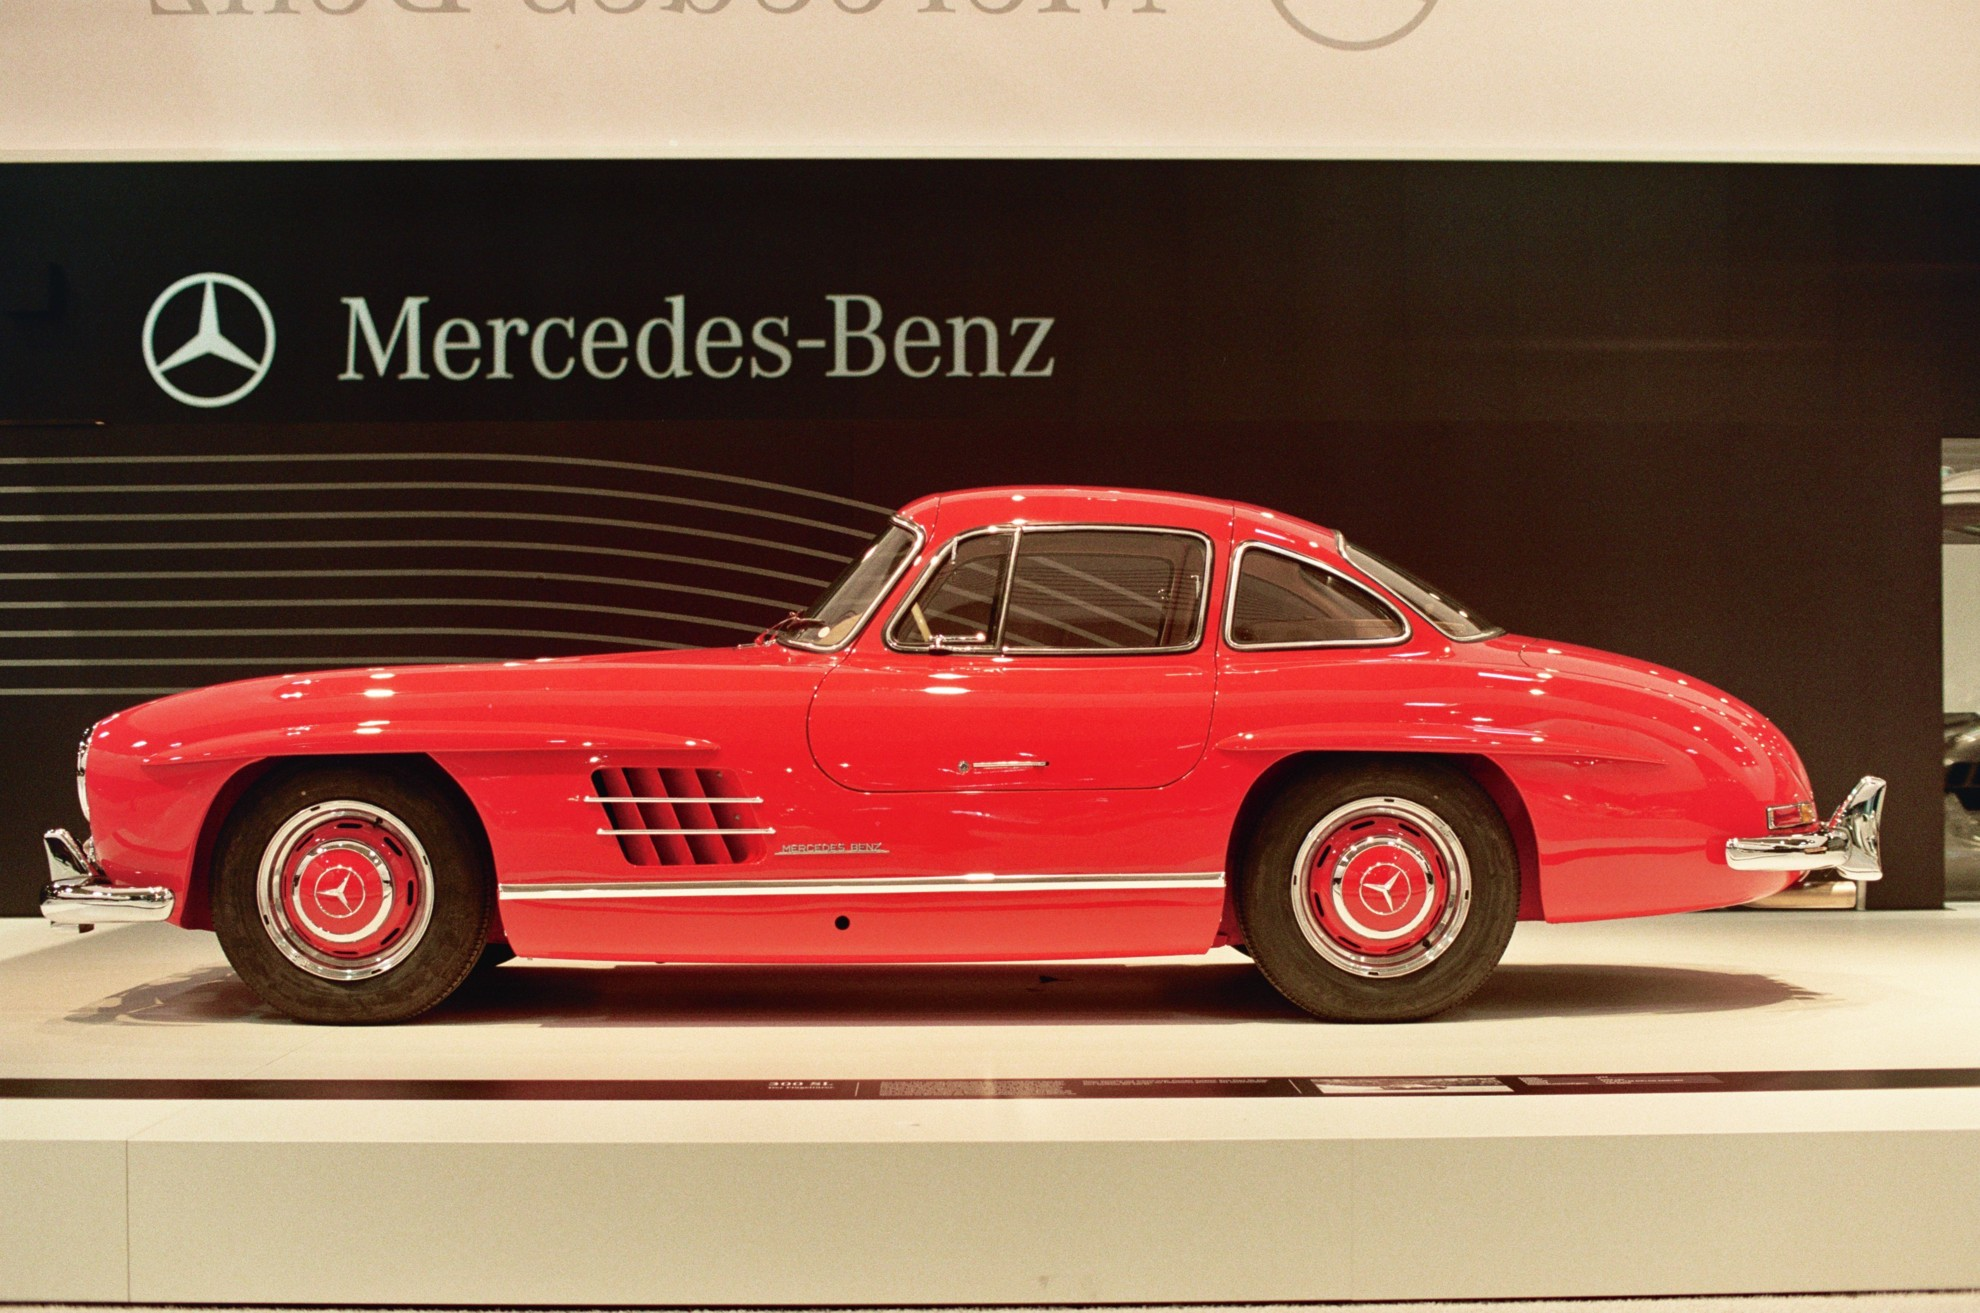 Mercedes benz a driving force in the classic car market - Mercedes car show ...